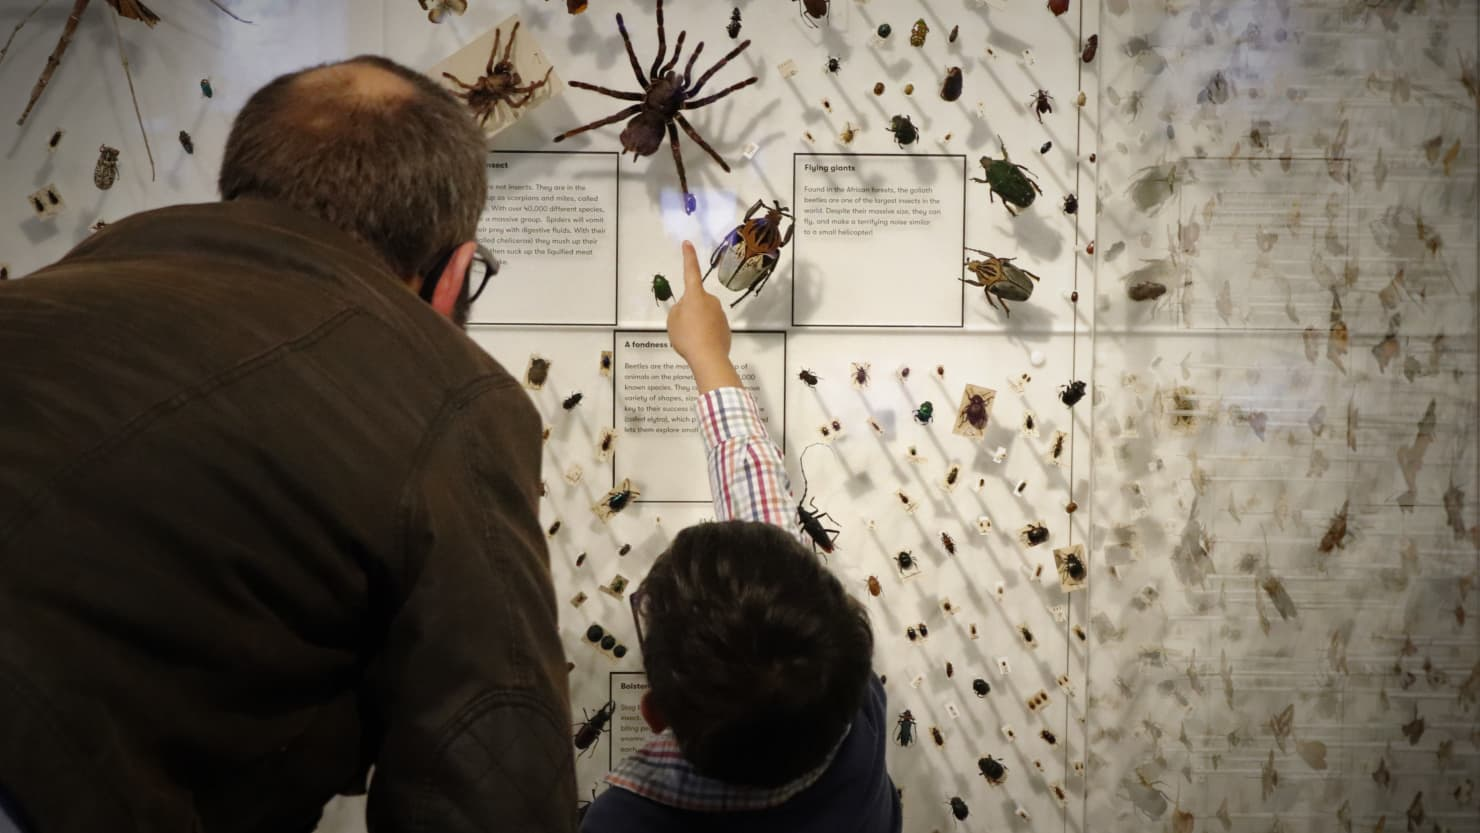 Displaying insects & biodiversity | Blog | The Box Plymouth